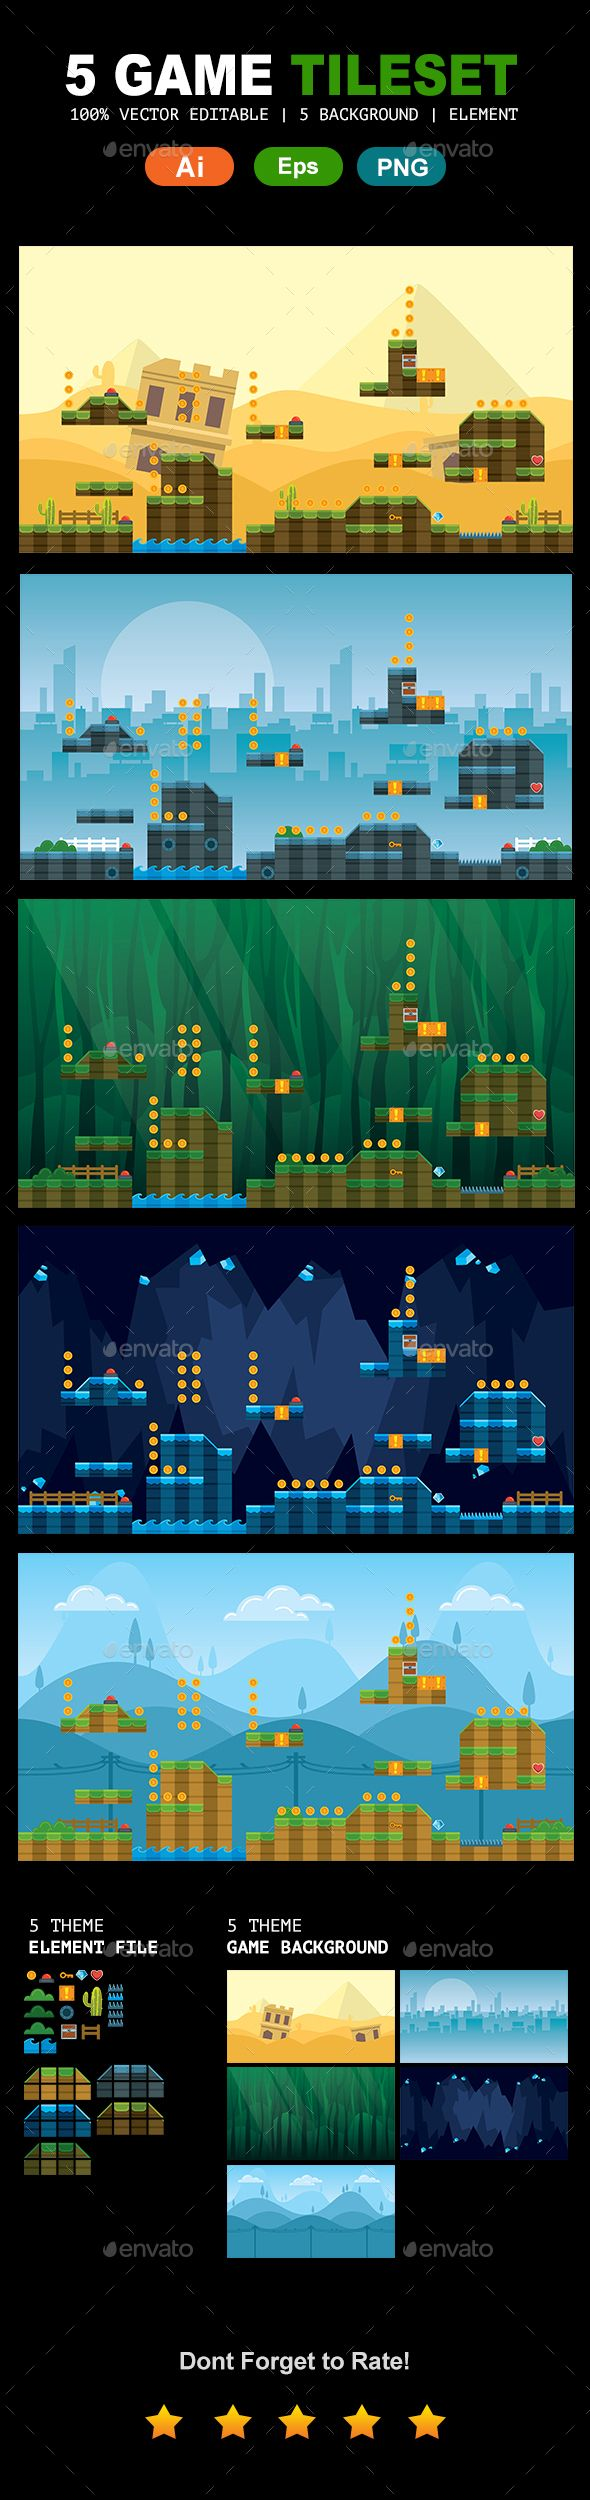 Gmail mountain theme background - 5 Tileset Game Backgrounds